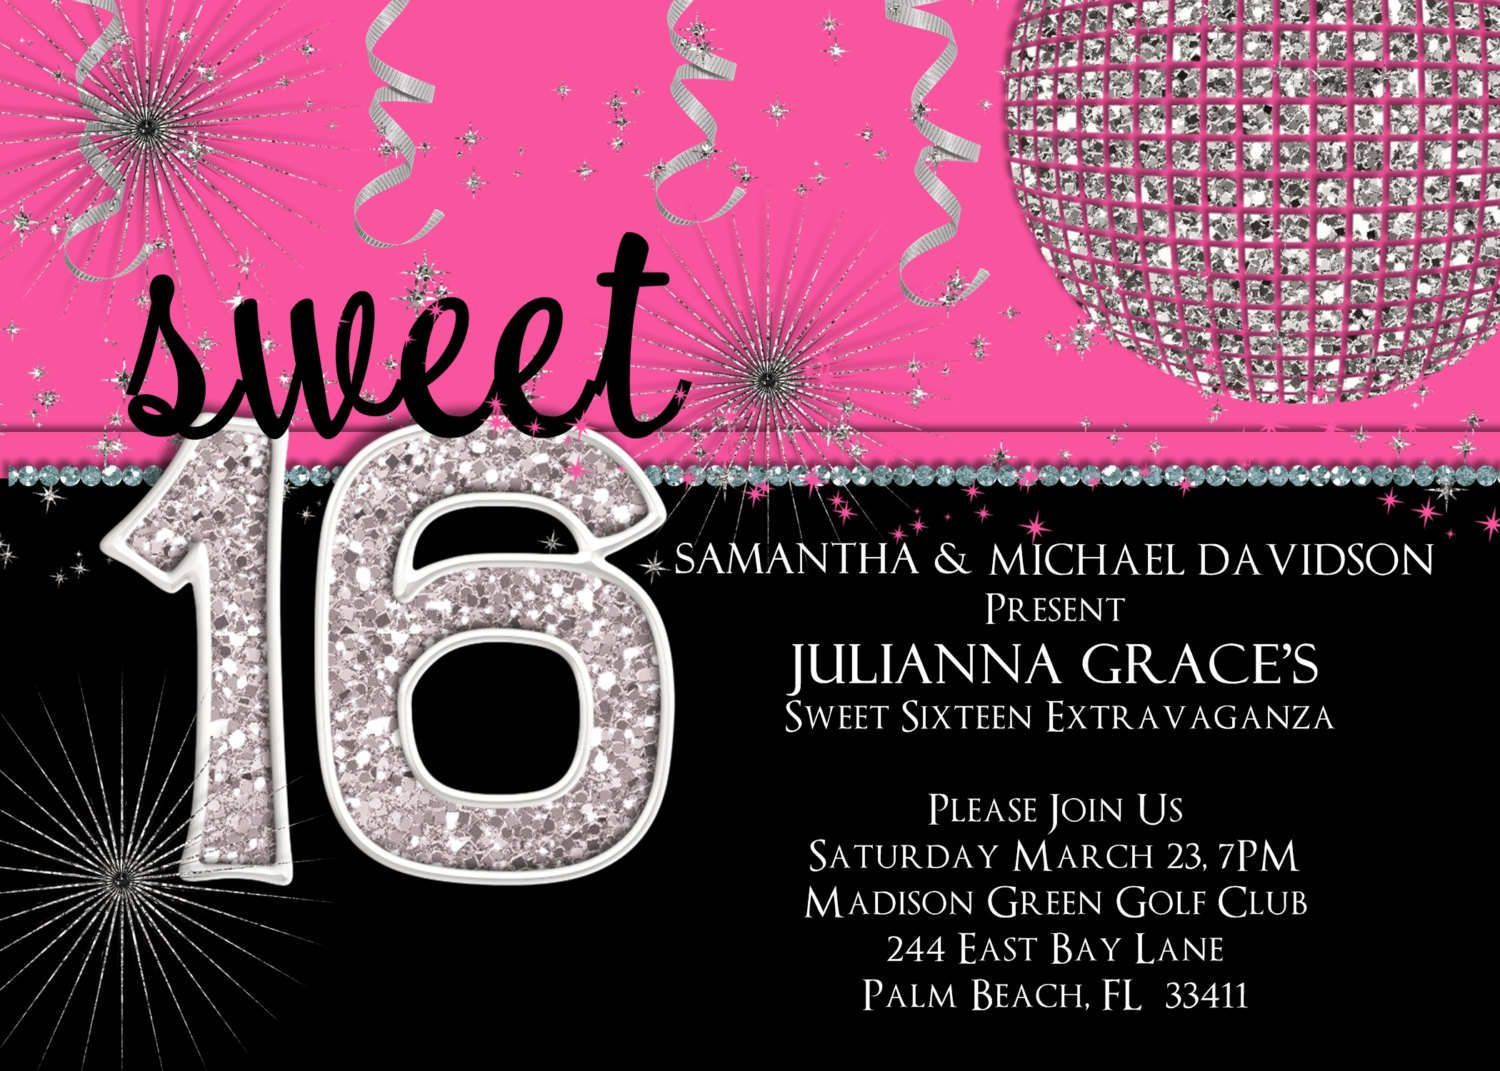 Sweet Sixteen Invitations | Sweet 16 Invitation Templates With Black - Free Printable Sweet 16 Birthday Party Invitations